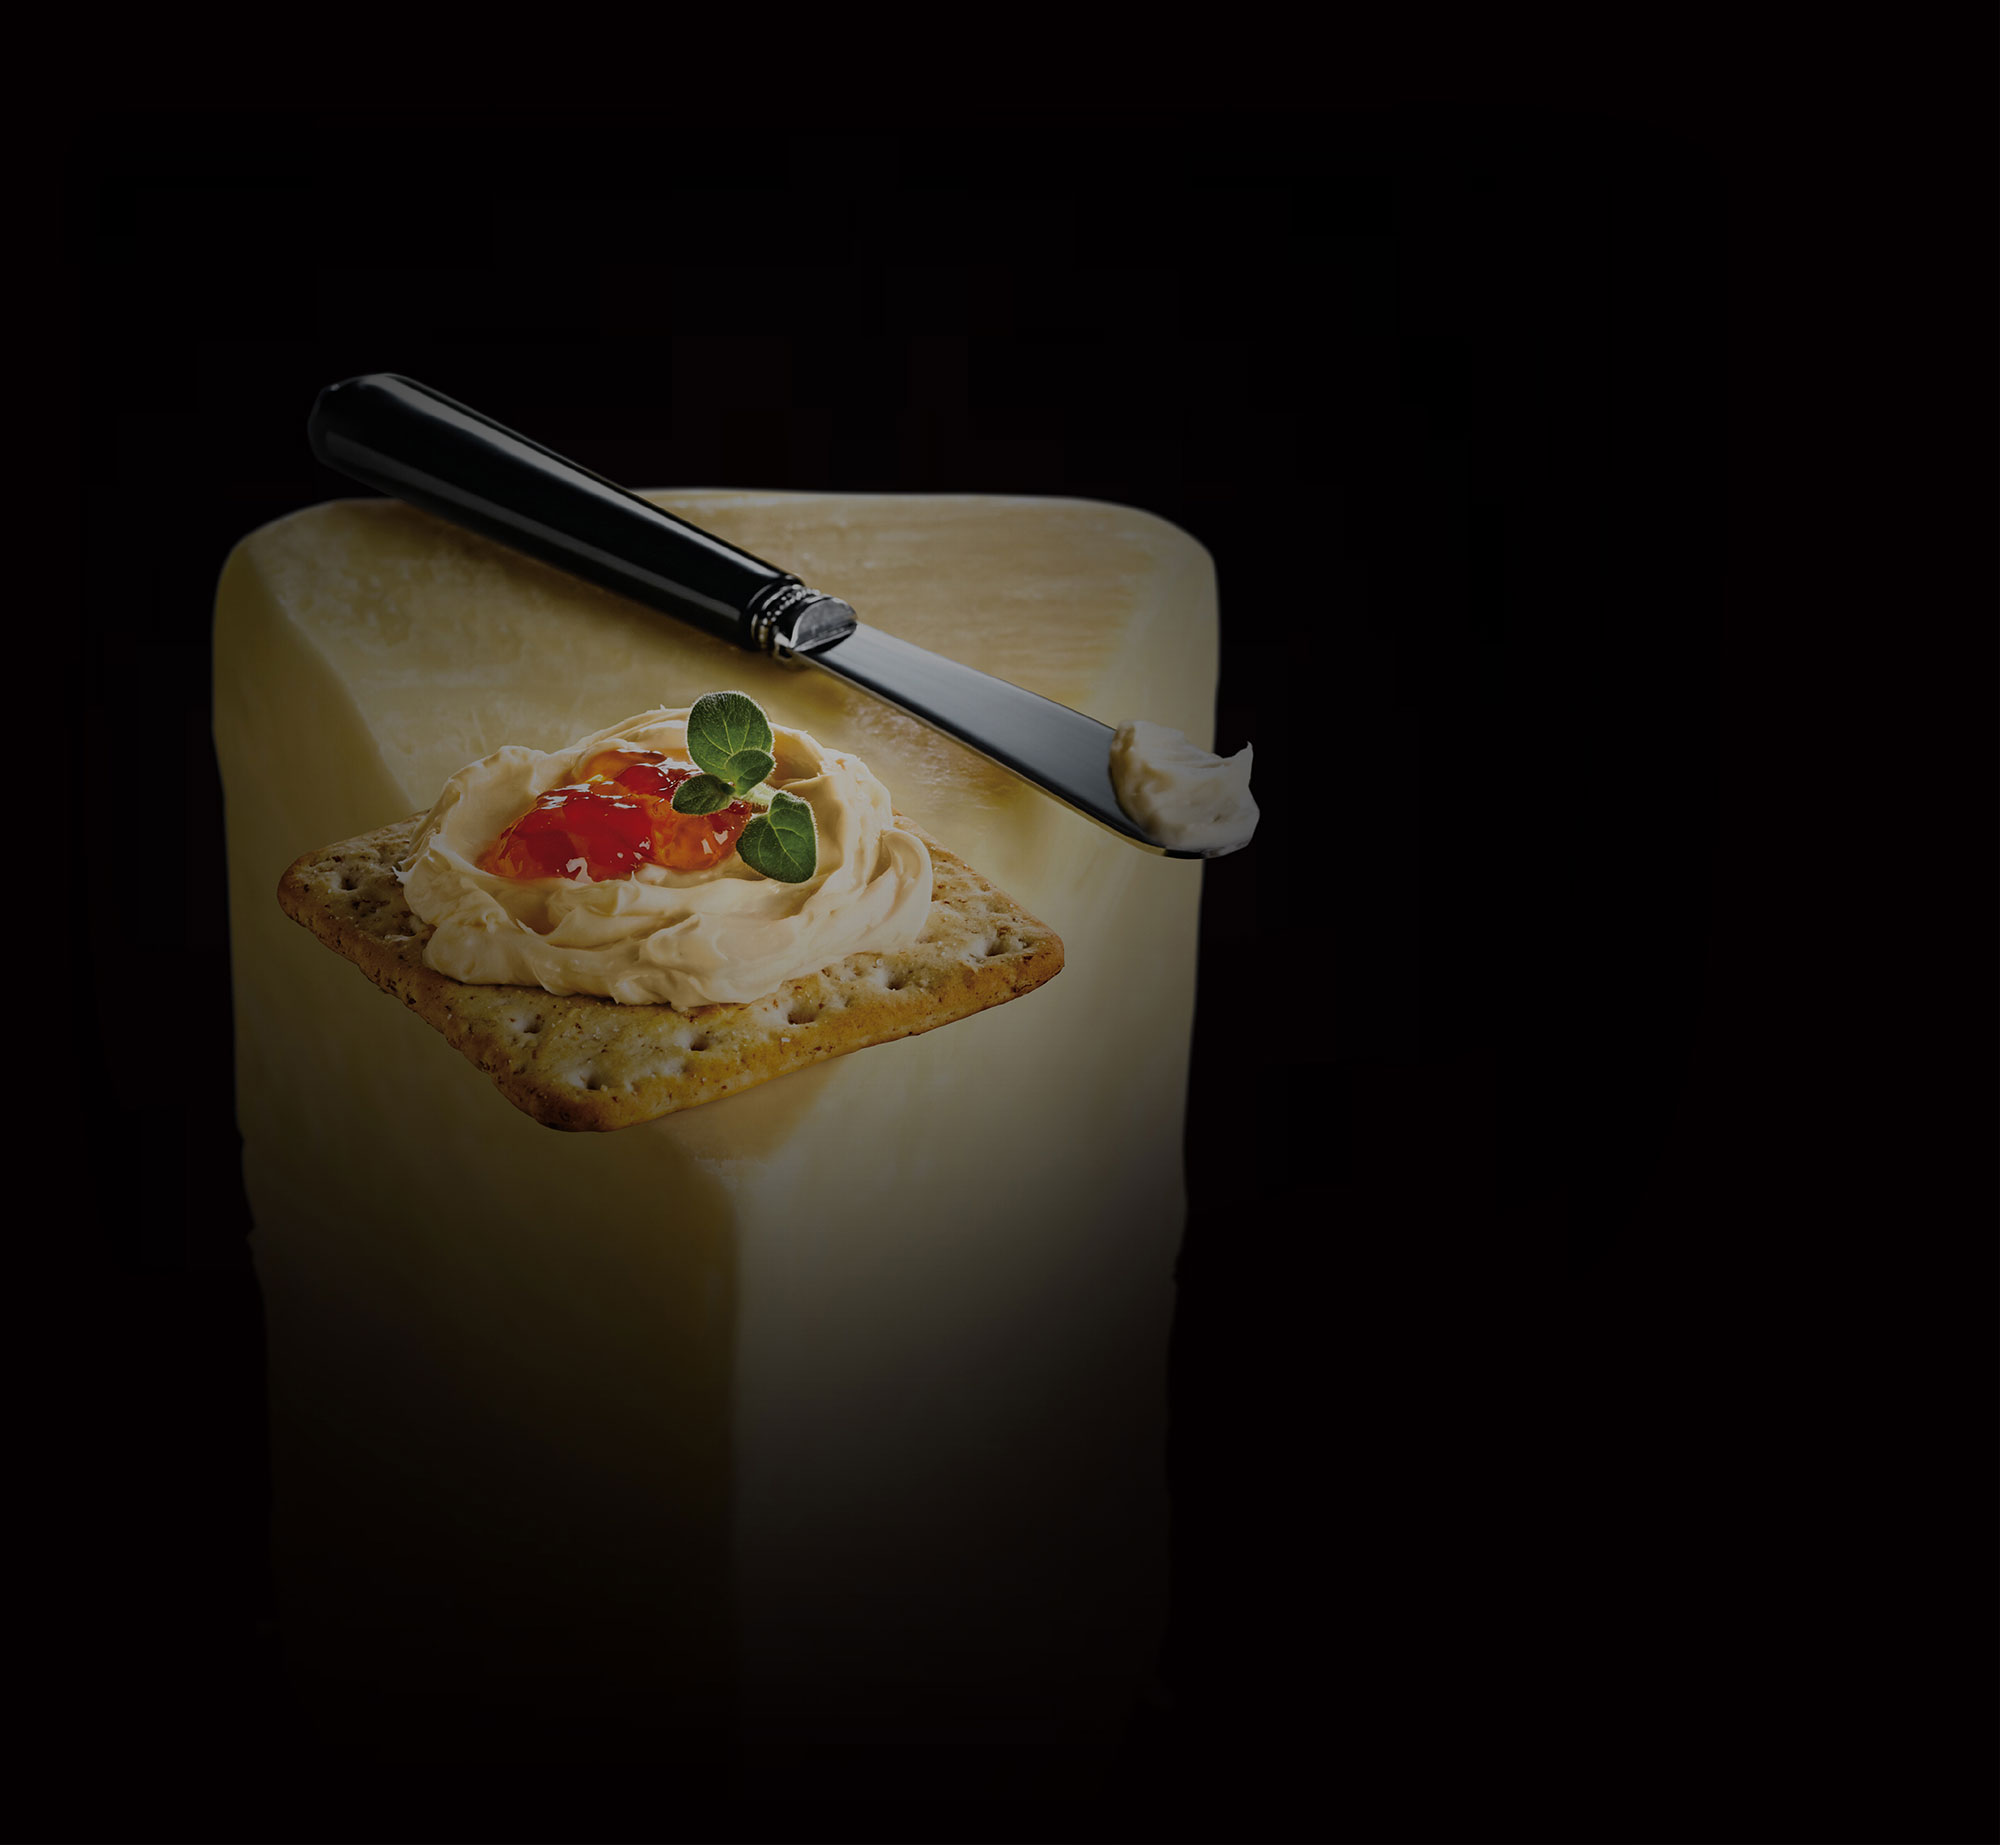 Background image: Spreadable cheese on cracker